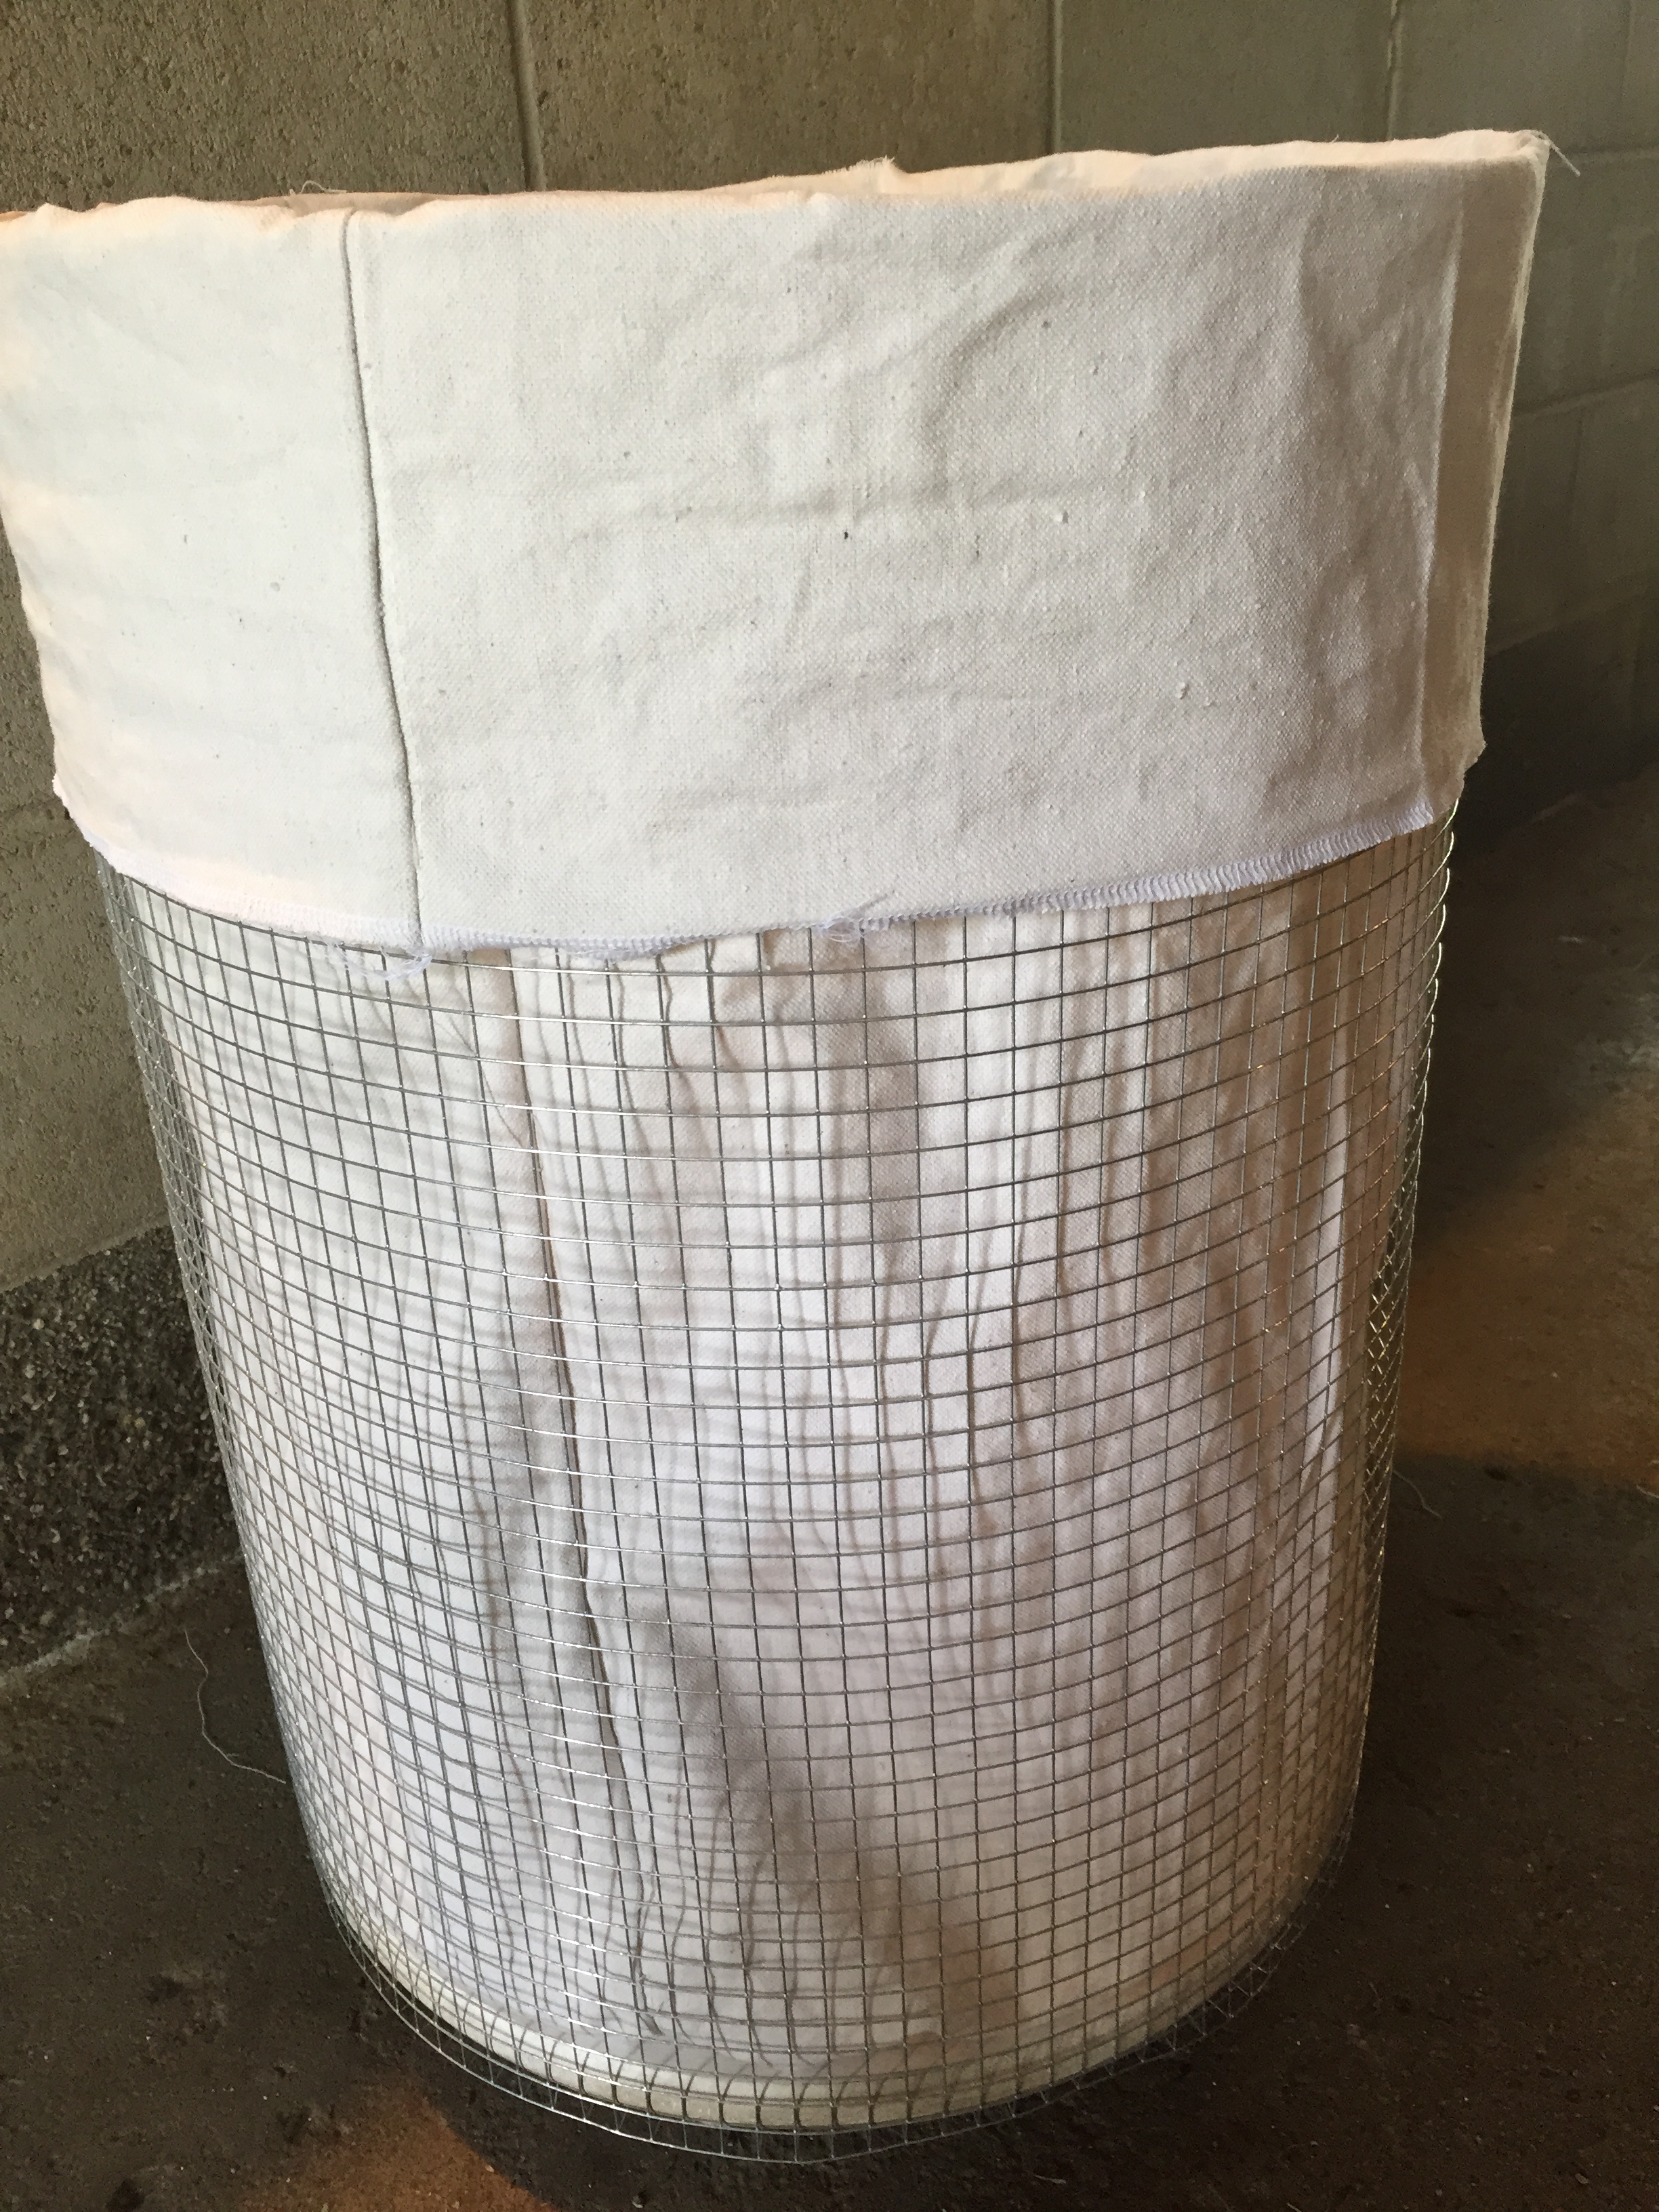 Vintage-y French Laundry Basket {on wheels} – Très Chick Boutique